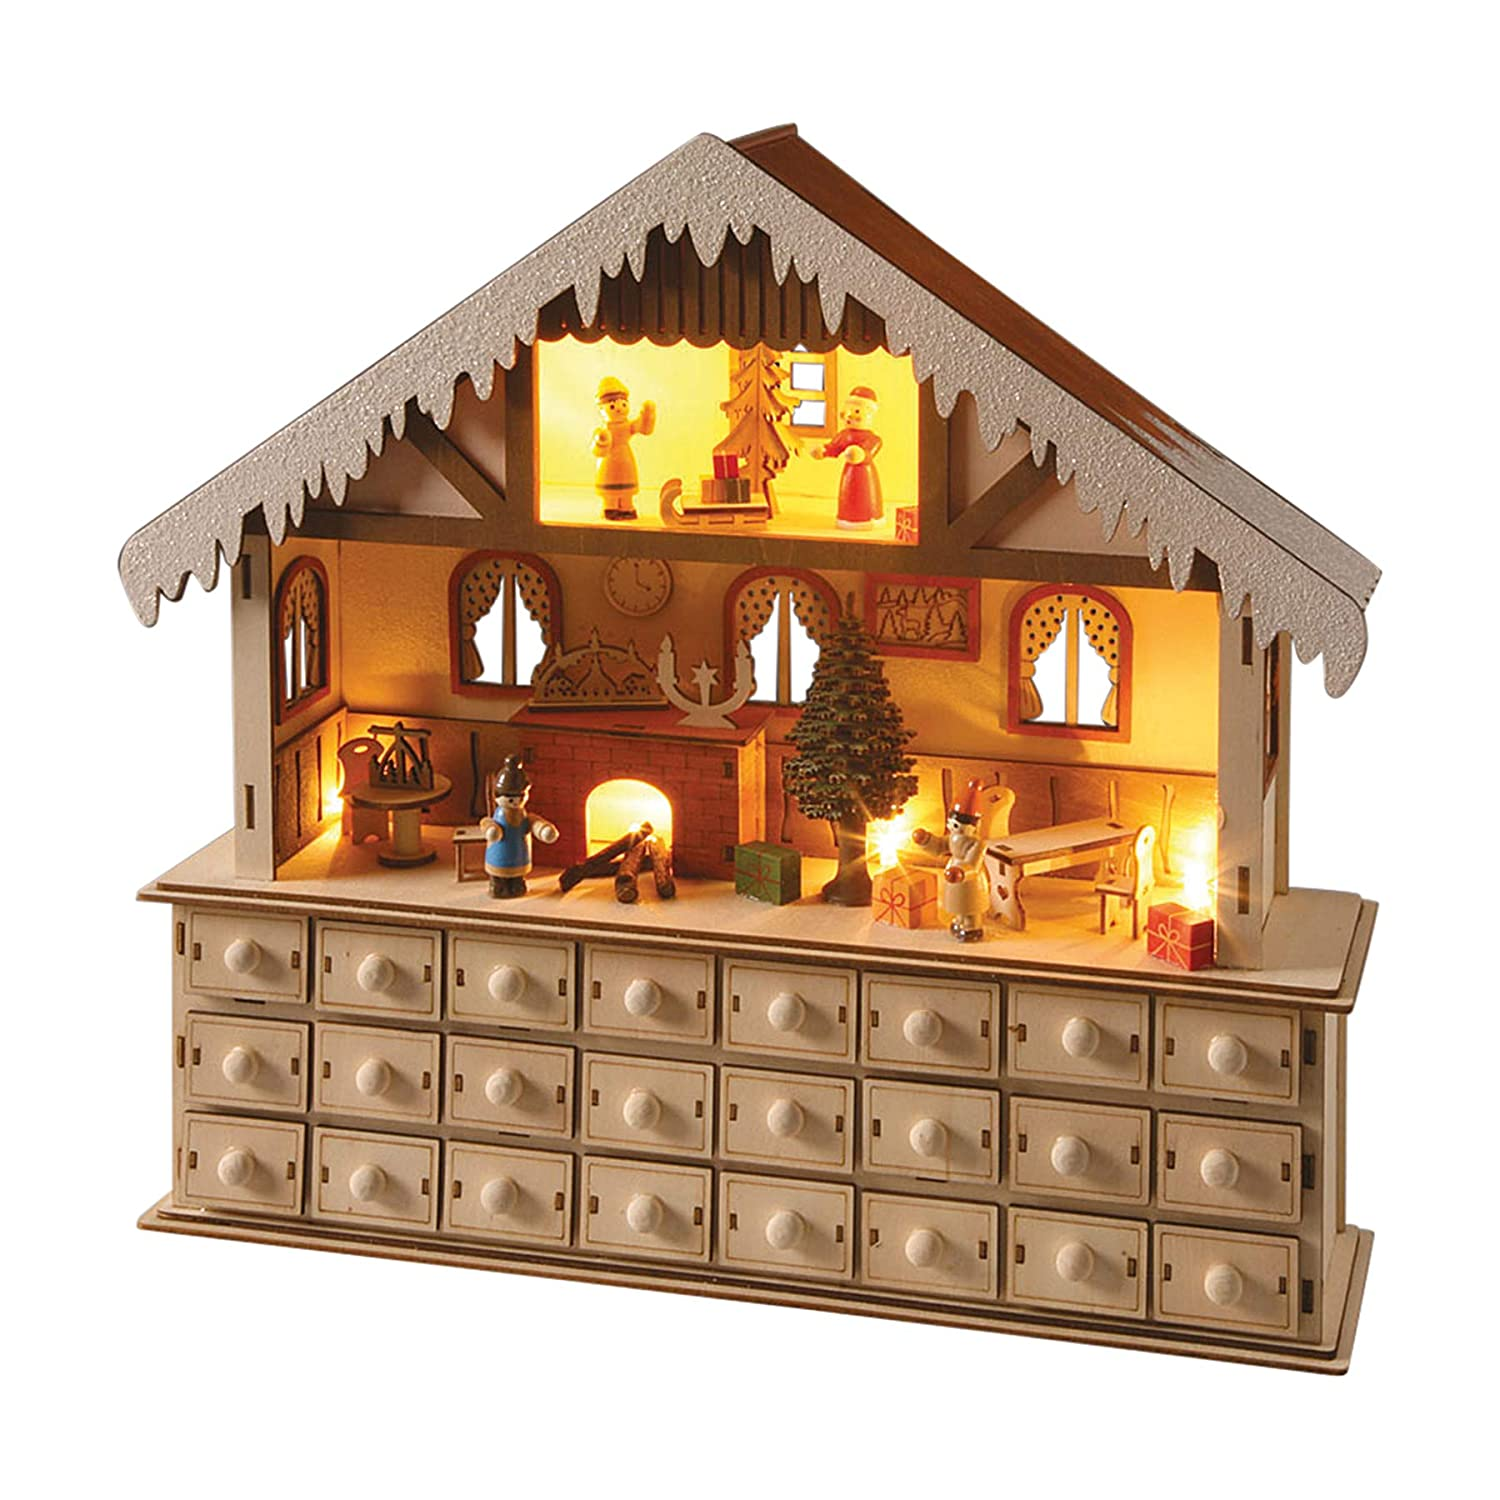 Light Up Santa's Workshop Advent Calendar